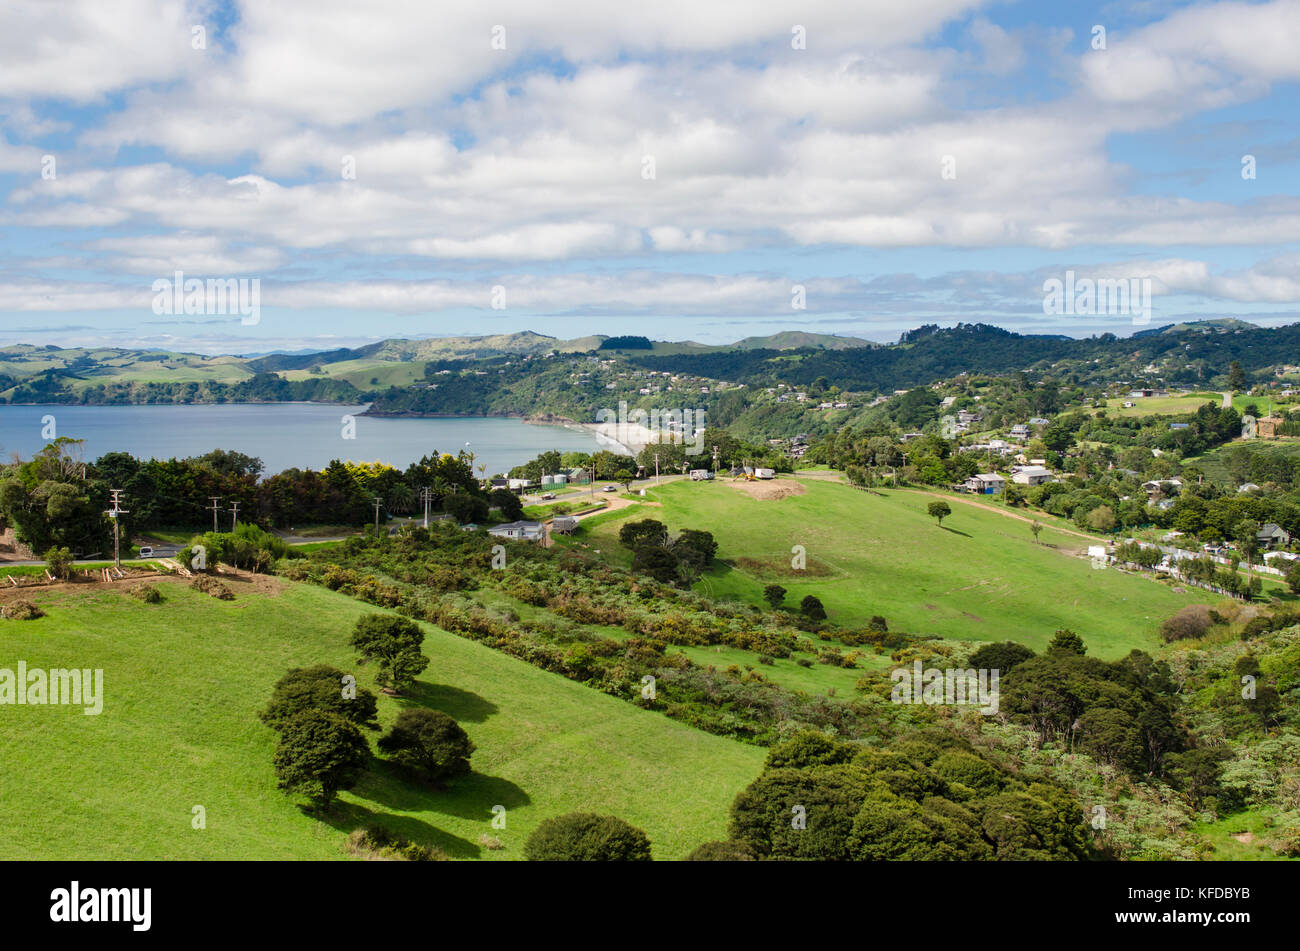 Sea view of Onetangi Valley, in Waiheke Island, Hauraki Gulf, New Zealand - Stock Image